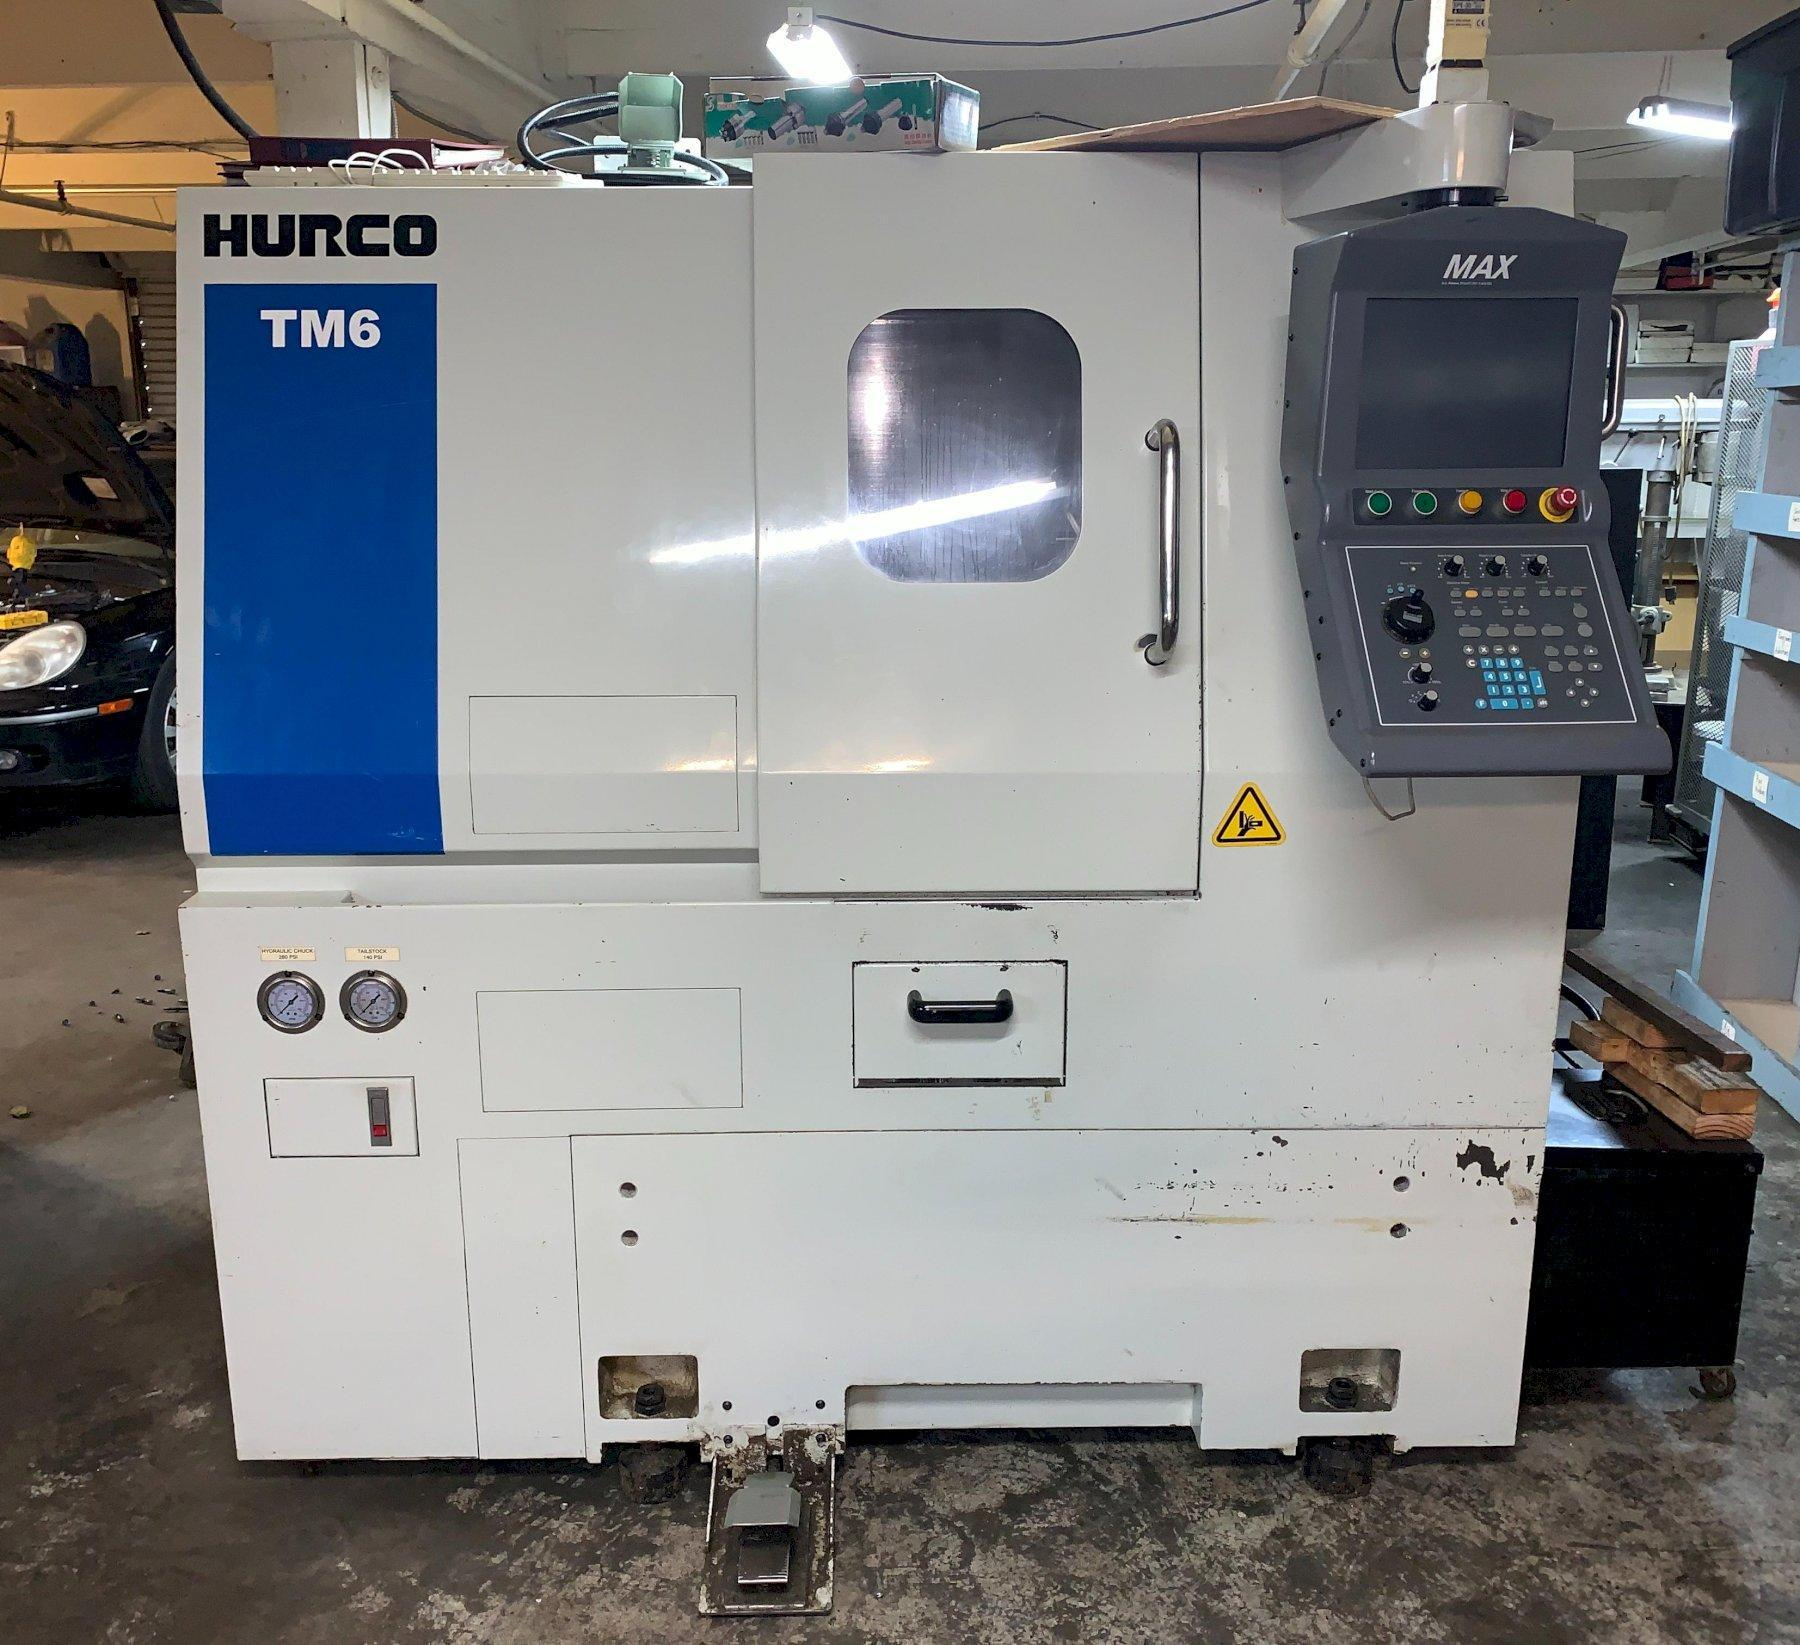 Hurco TM6 CNC Lathe, New 2006, with Hurco Max Control